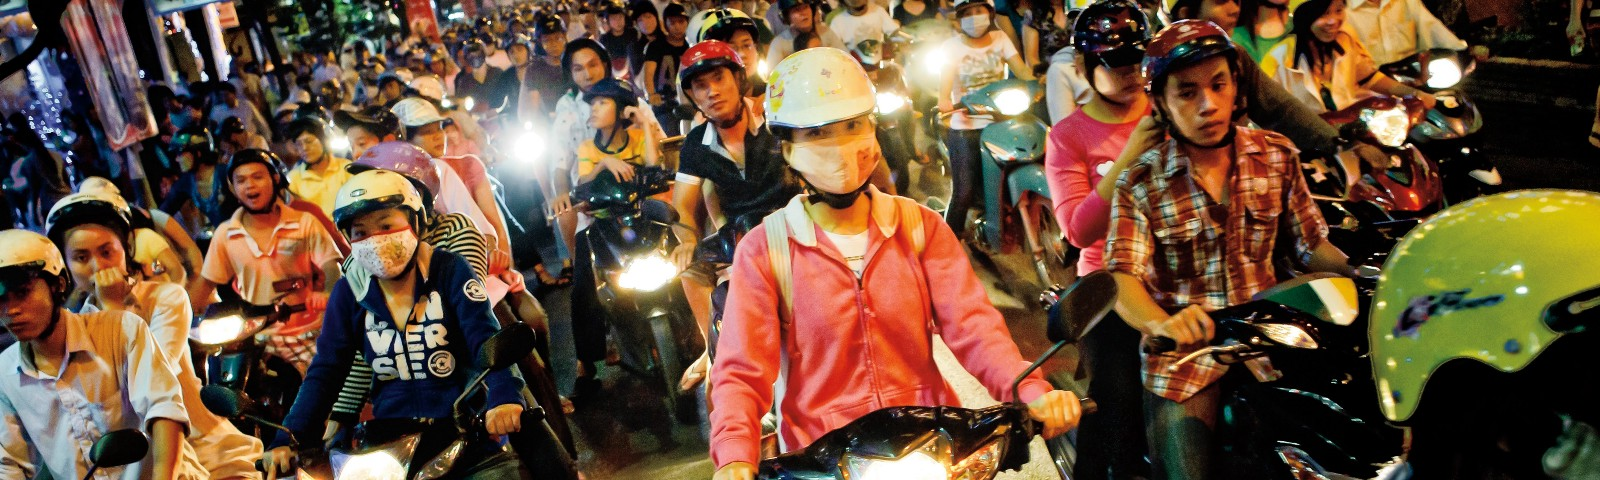 A crowd of people in motorbike traffic, some wearing face masks